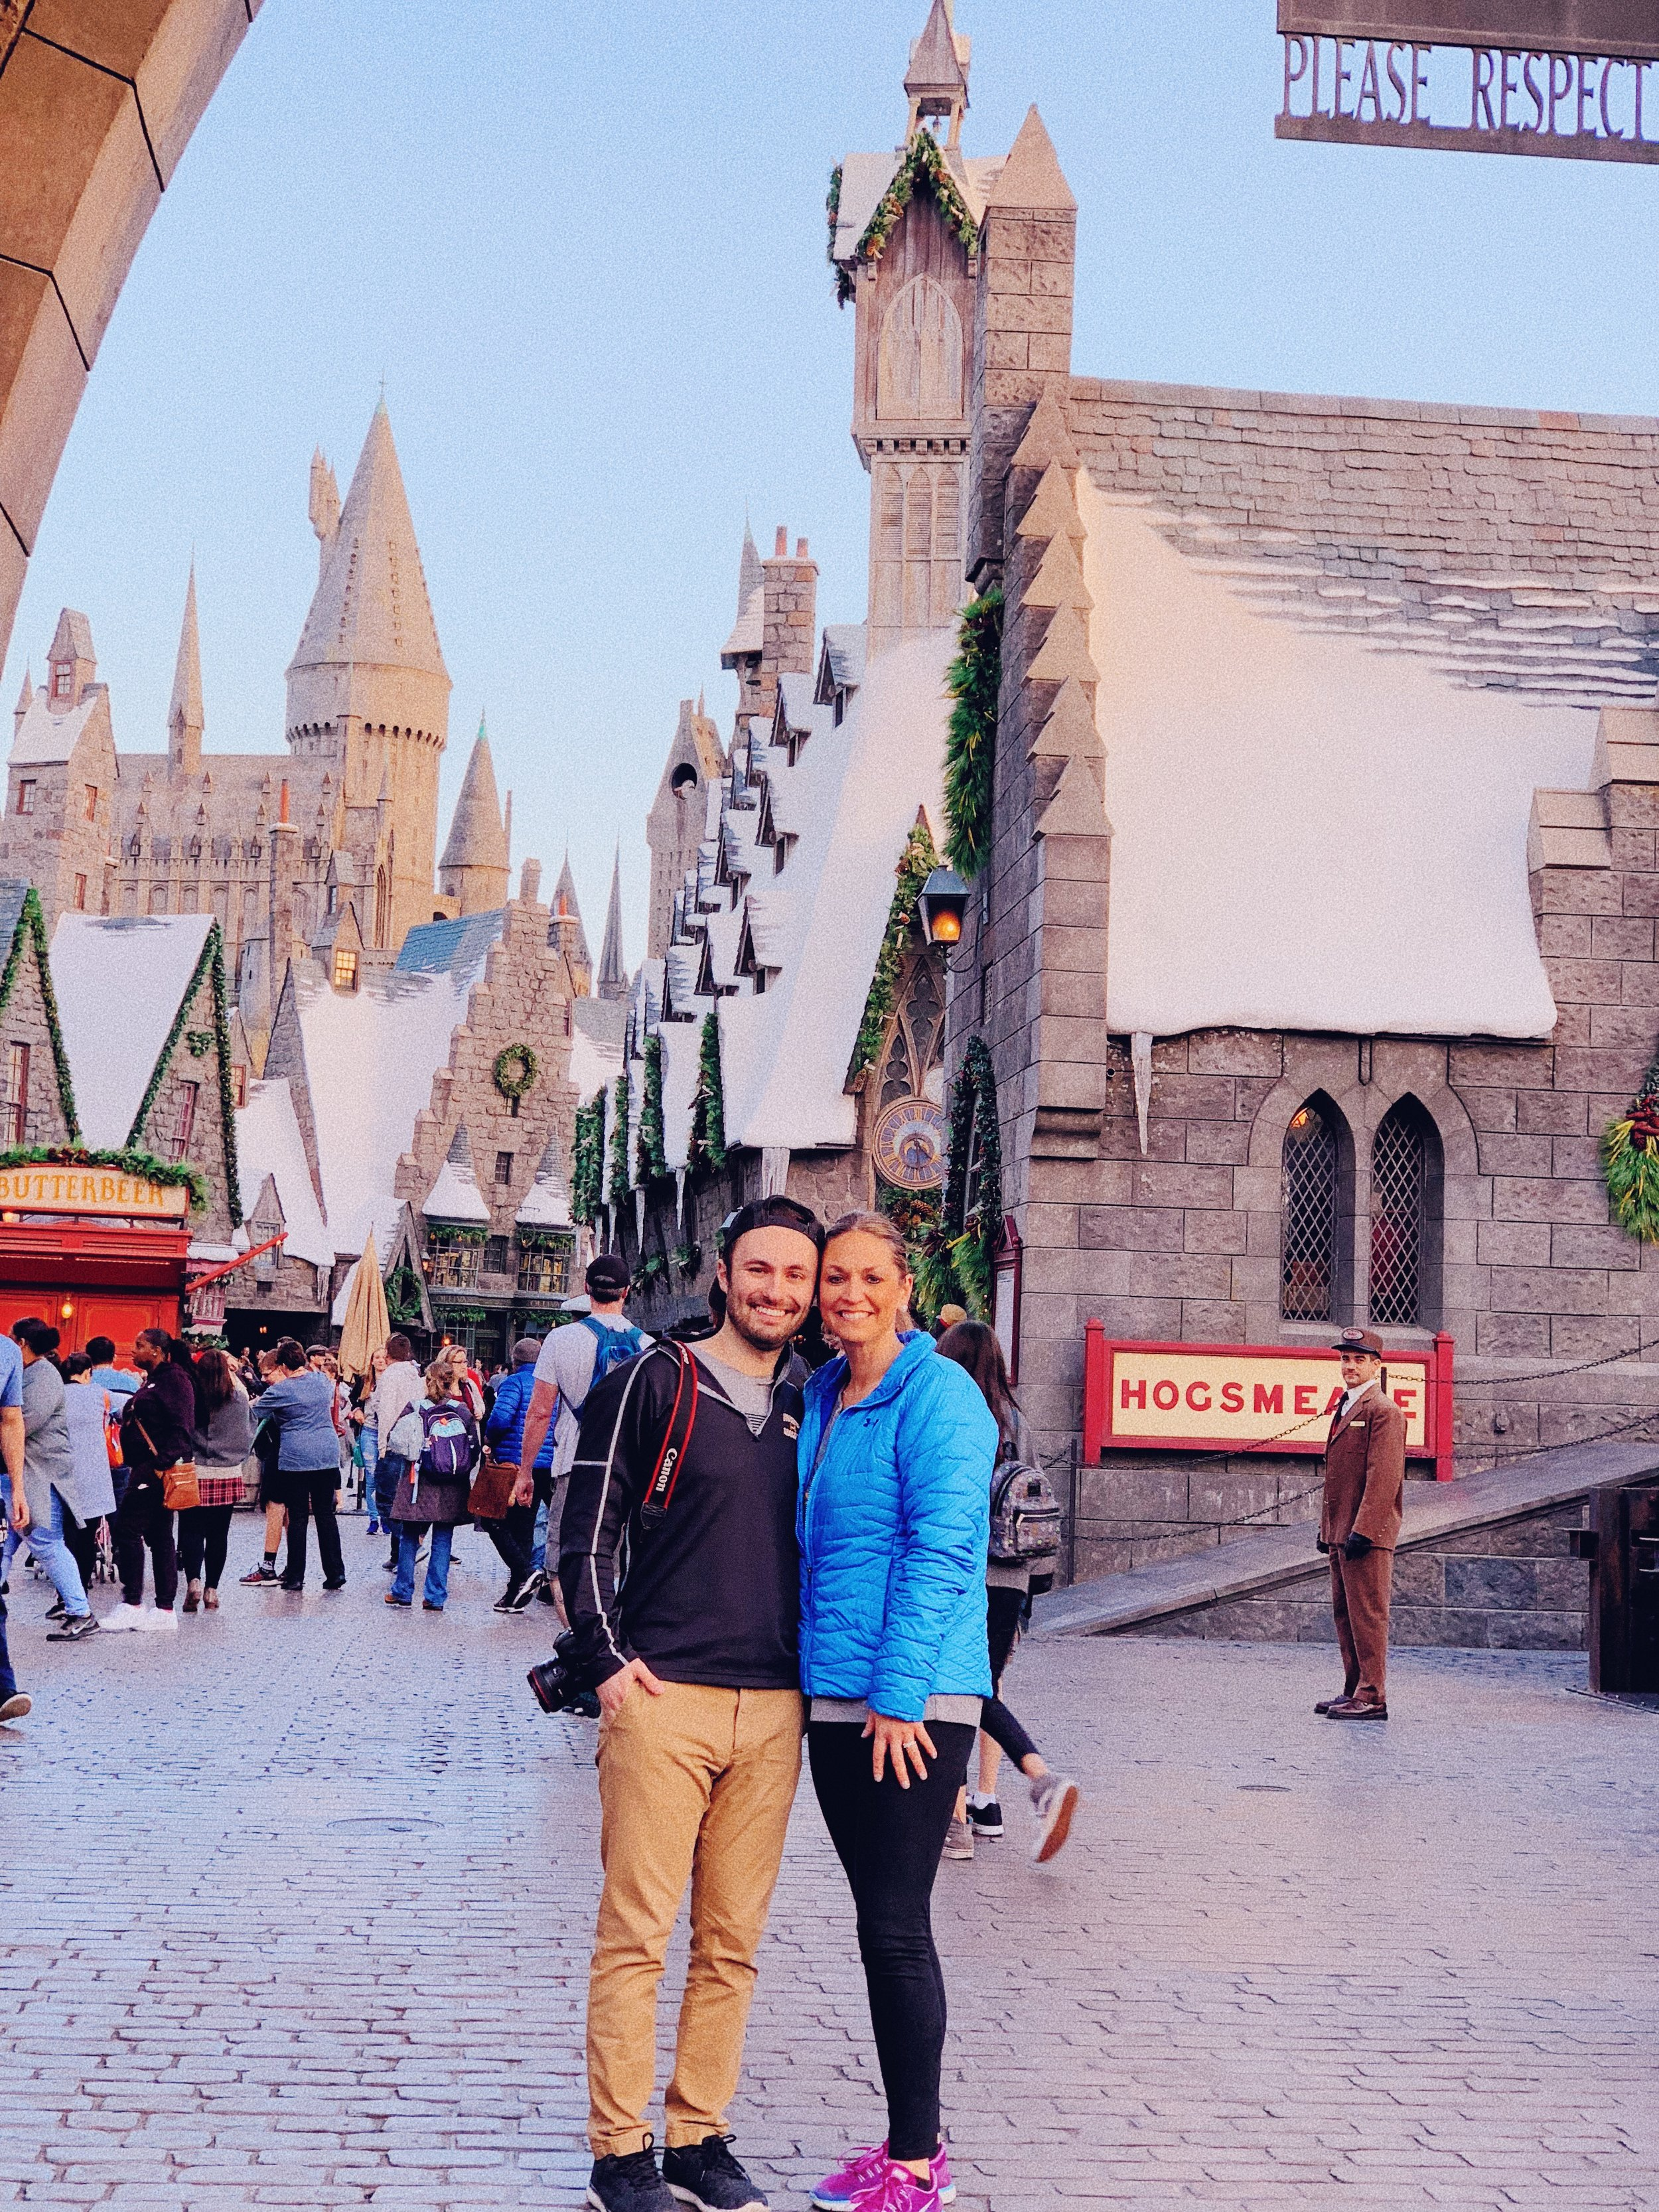 My mom surprised me with tickets to Universal Studios and Harry Potter World, a dream of mine. Harry Potter has been an influential part of my life, and it was more than kind and gracious of my mom to give me this experience; it was love.